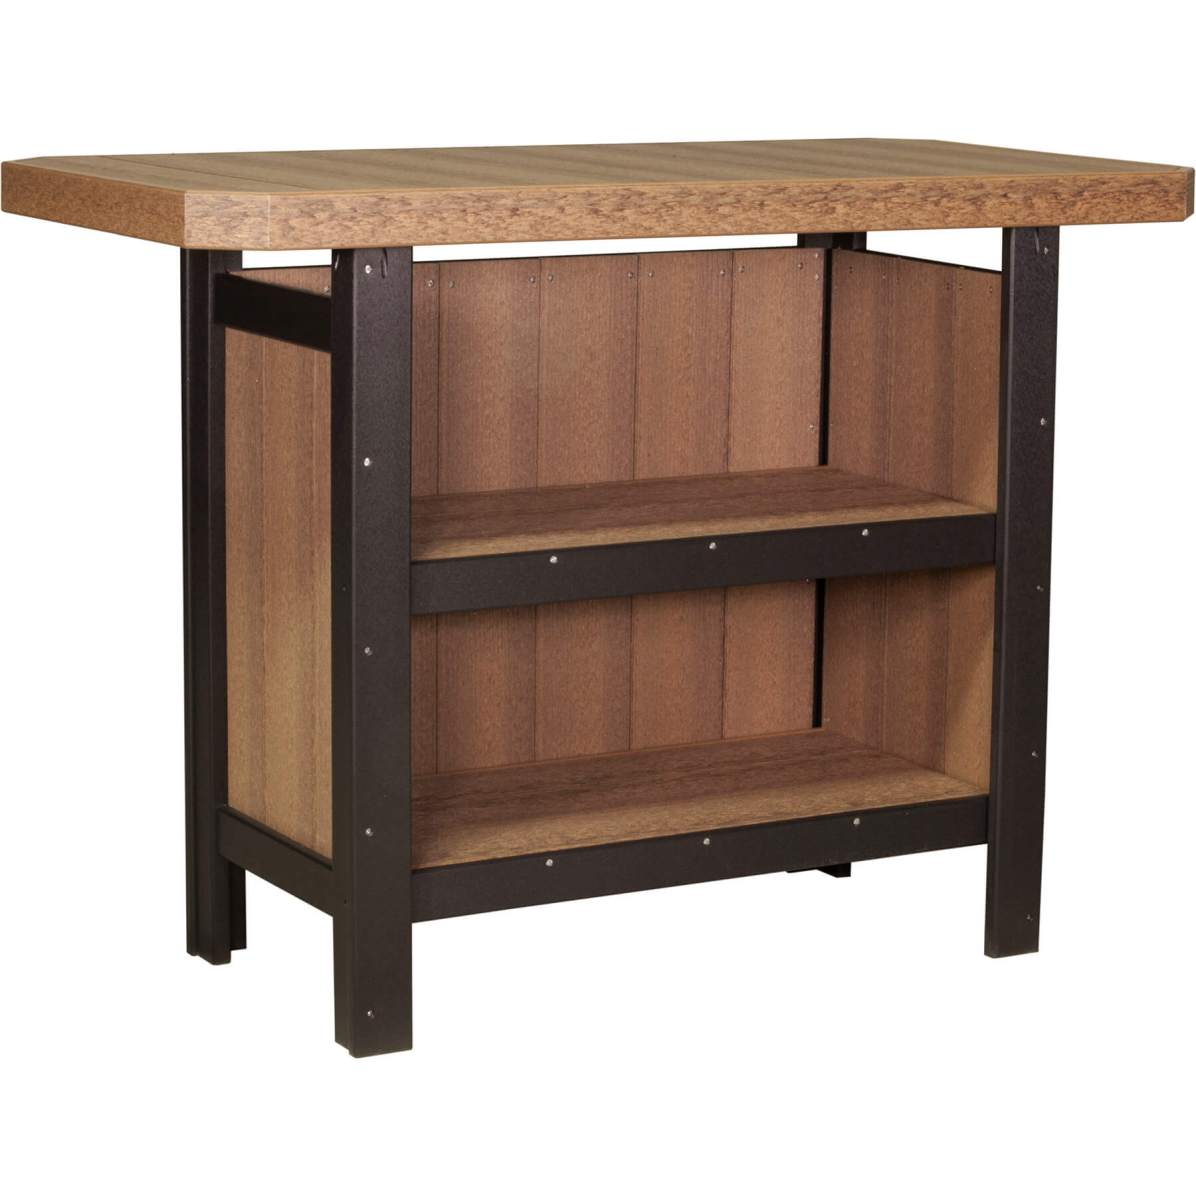 PSBAMB Poly Serving Bar (Antique Mahogany & Black)